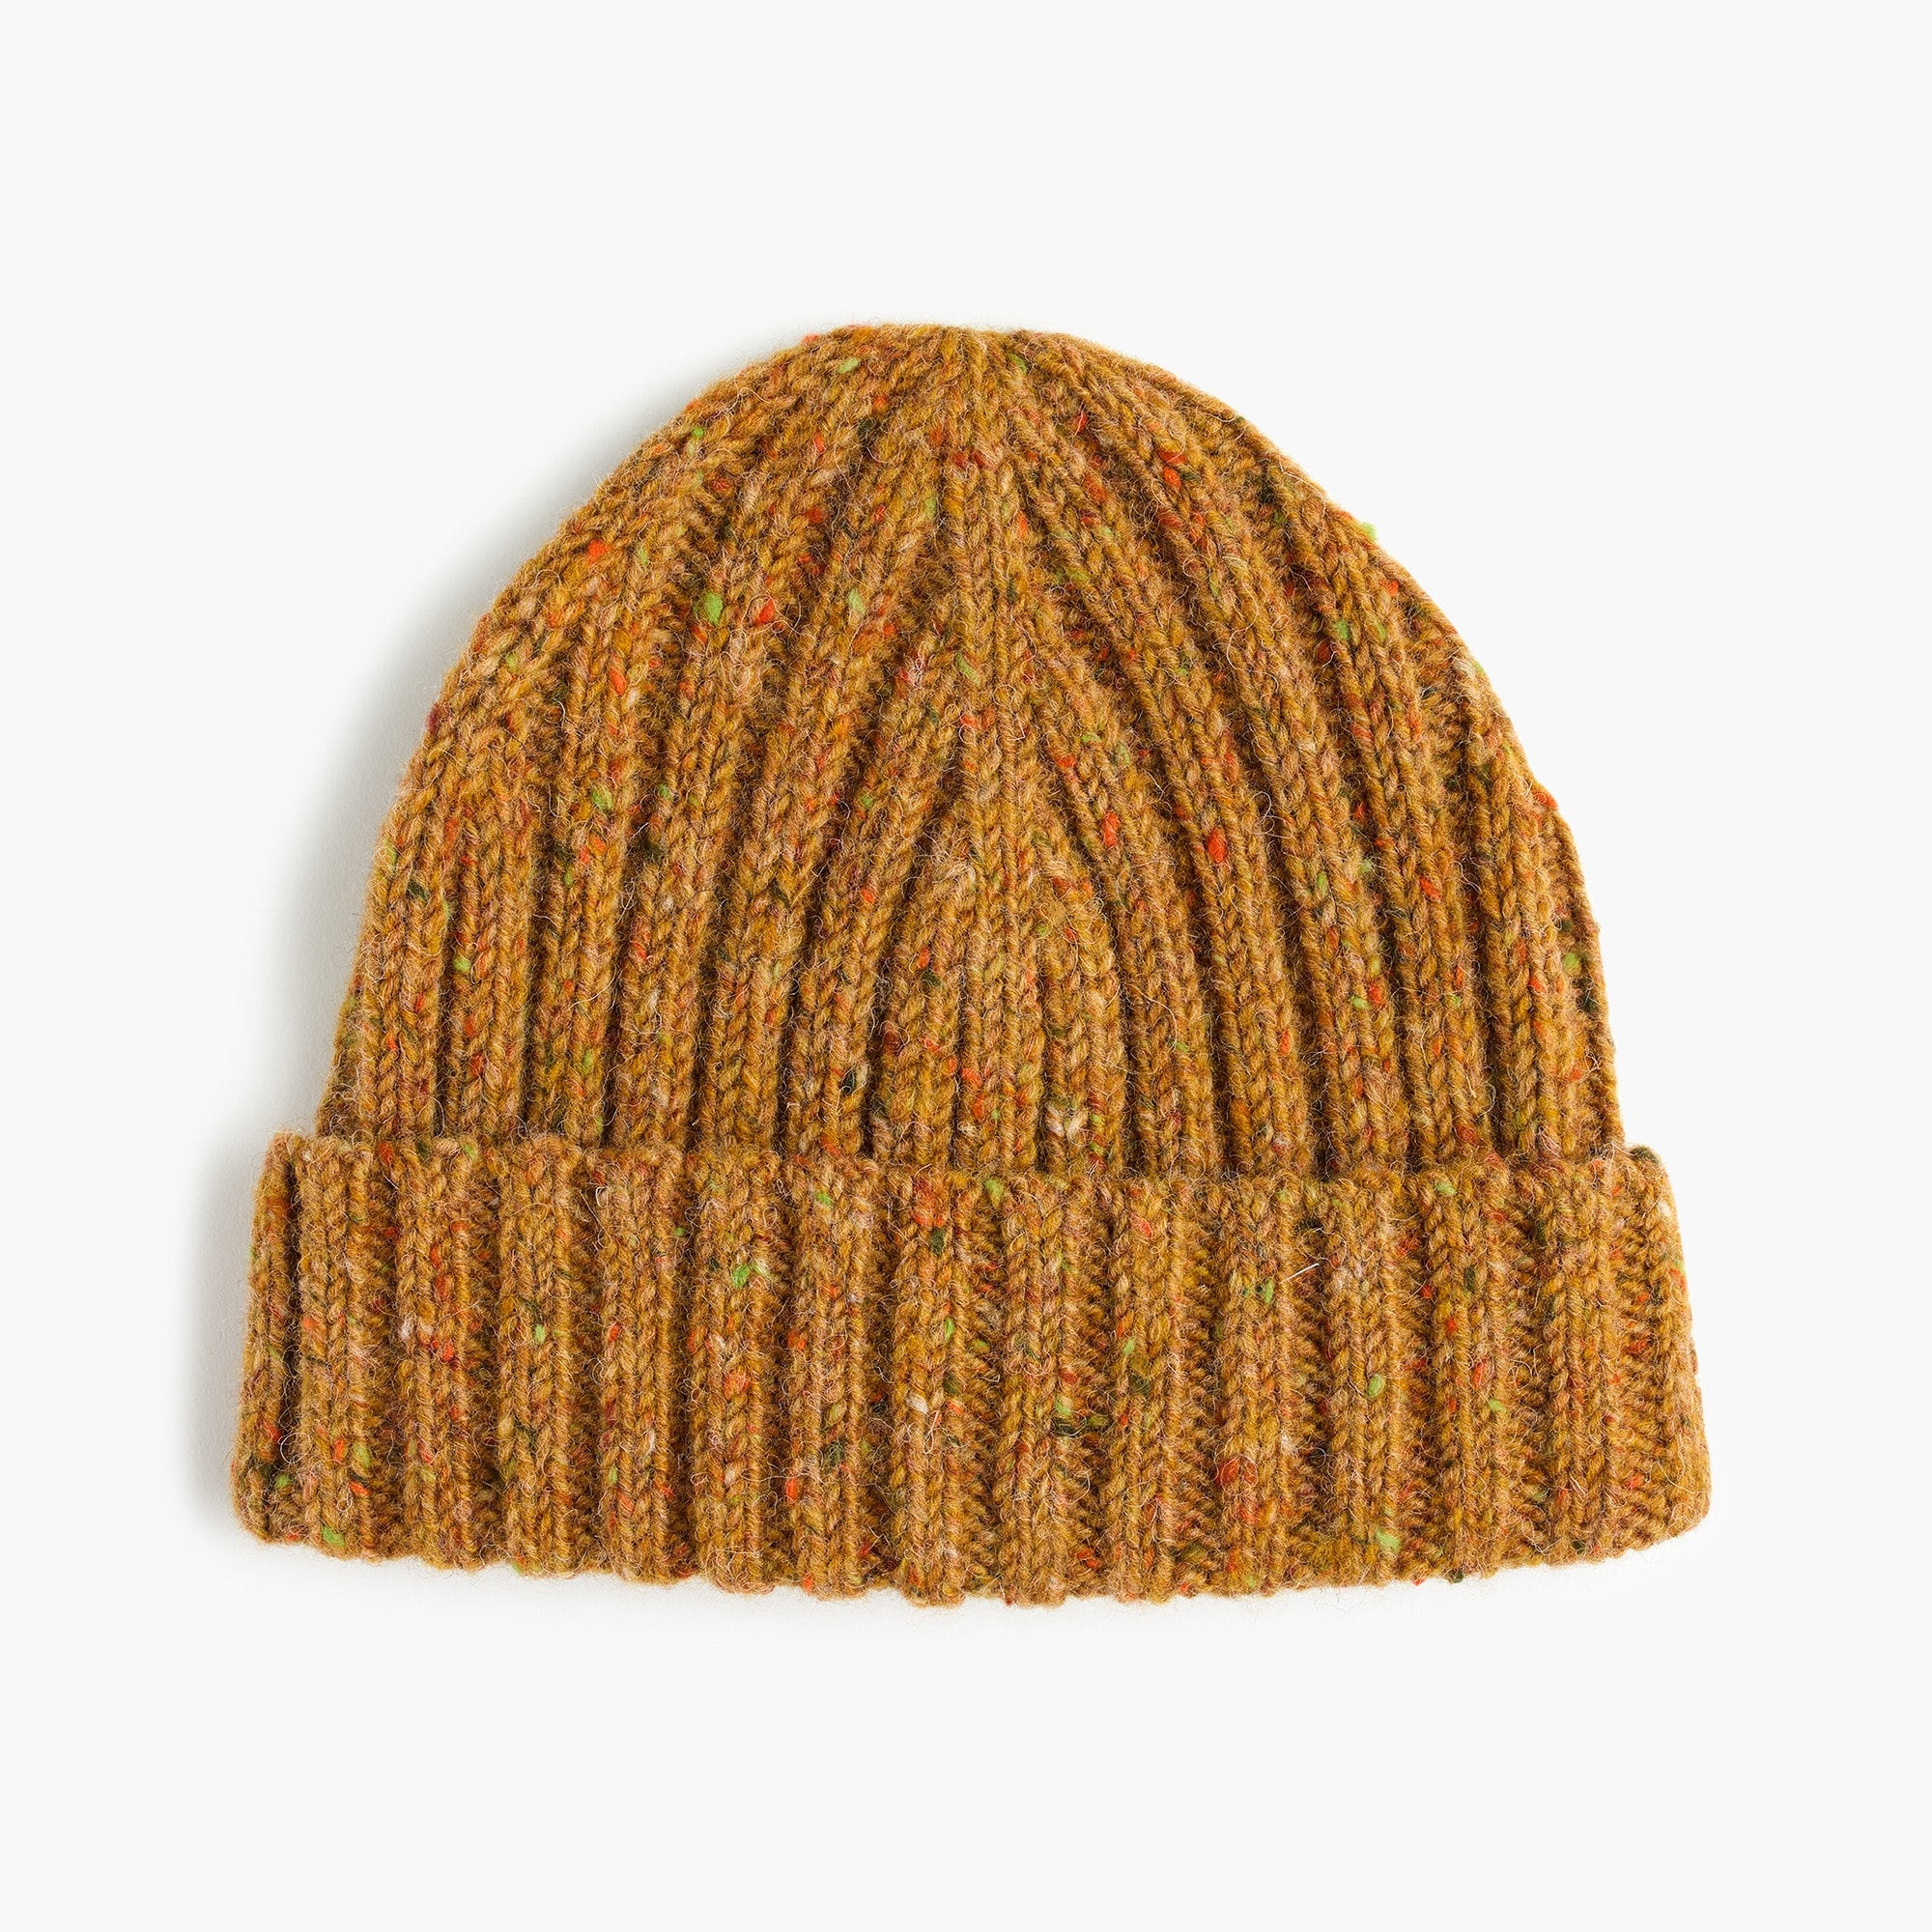 Donegal wool ribbed beanie